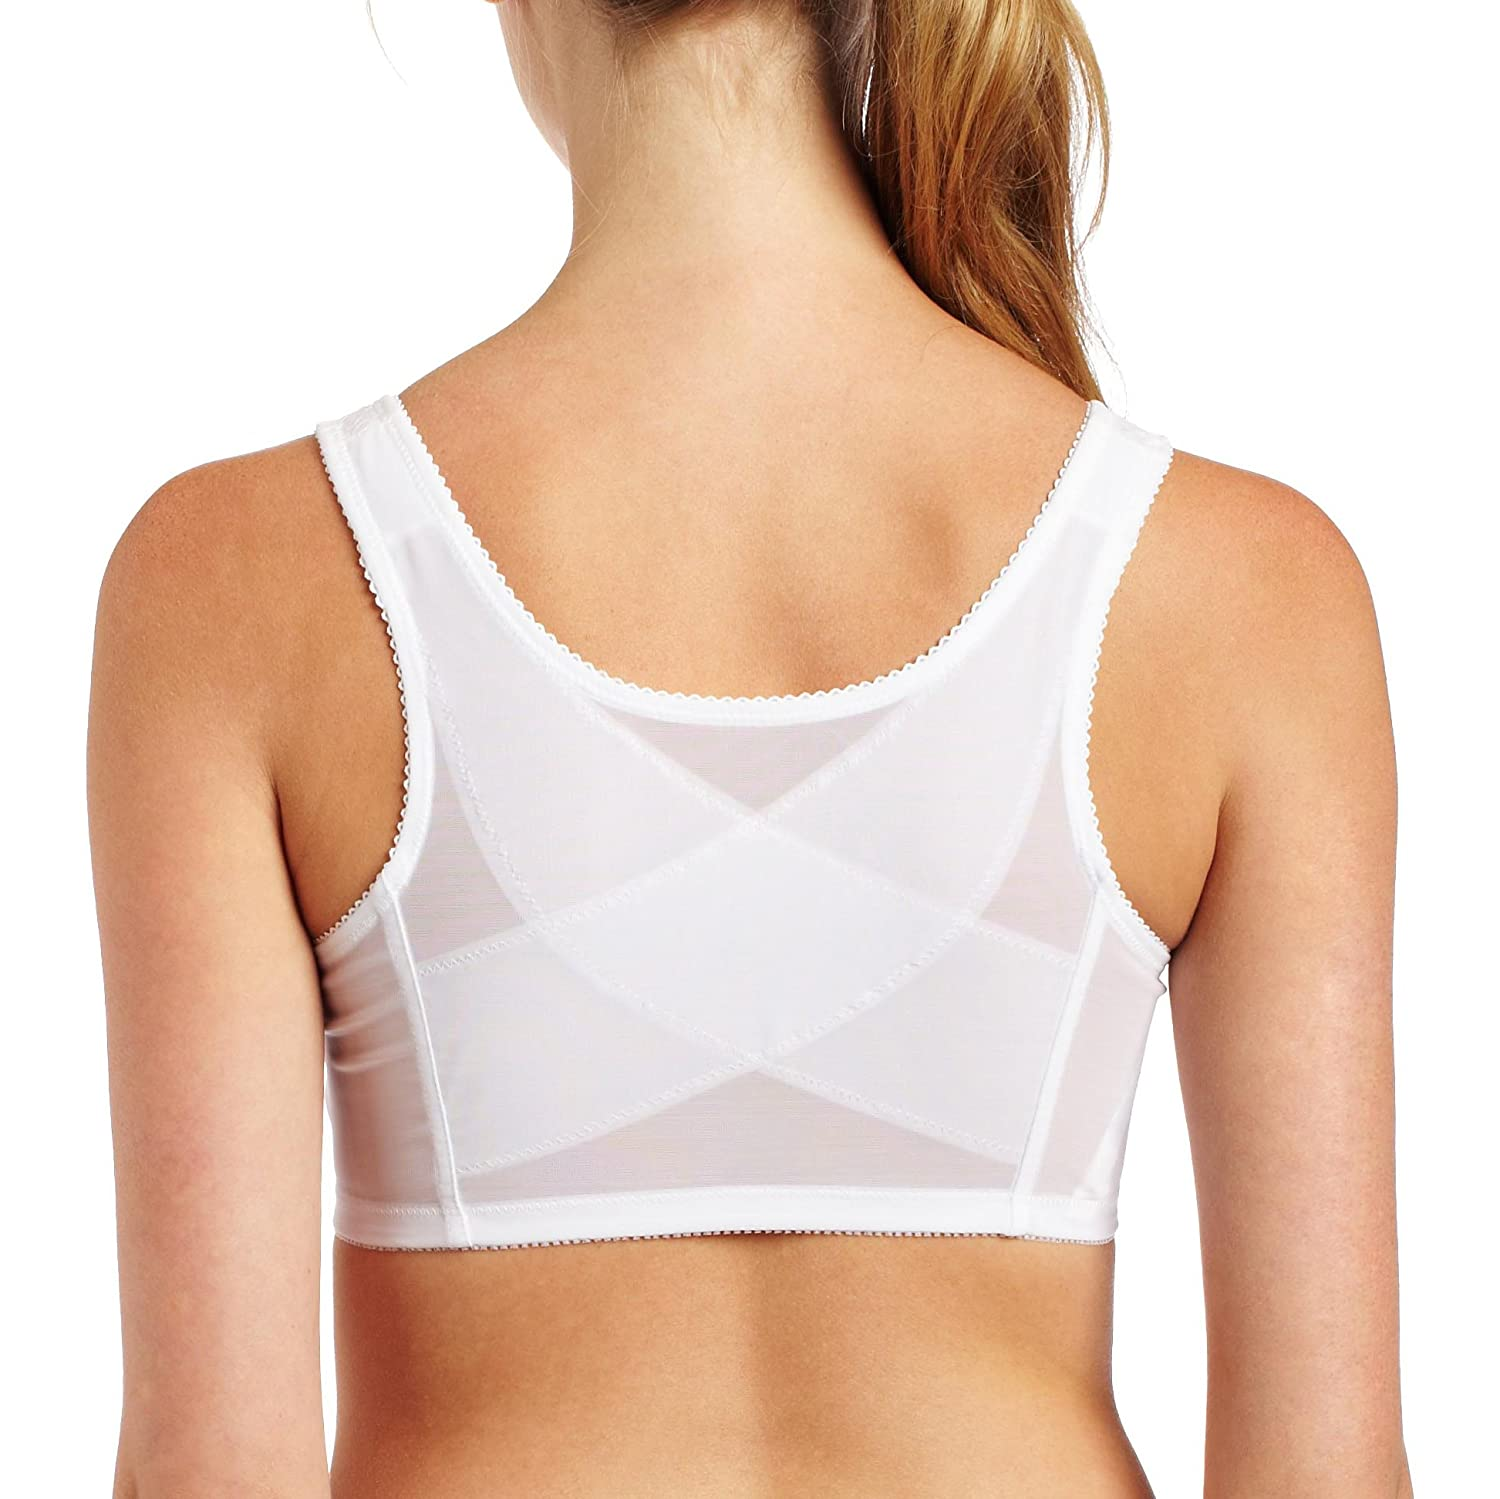 EXQUISITE FORM Womens Front Close Posture Bra #5100565